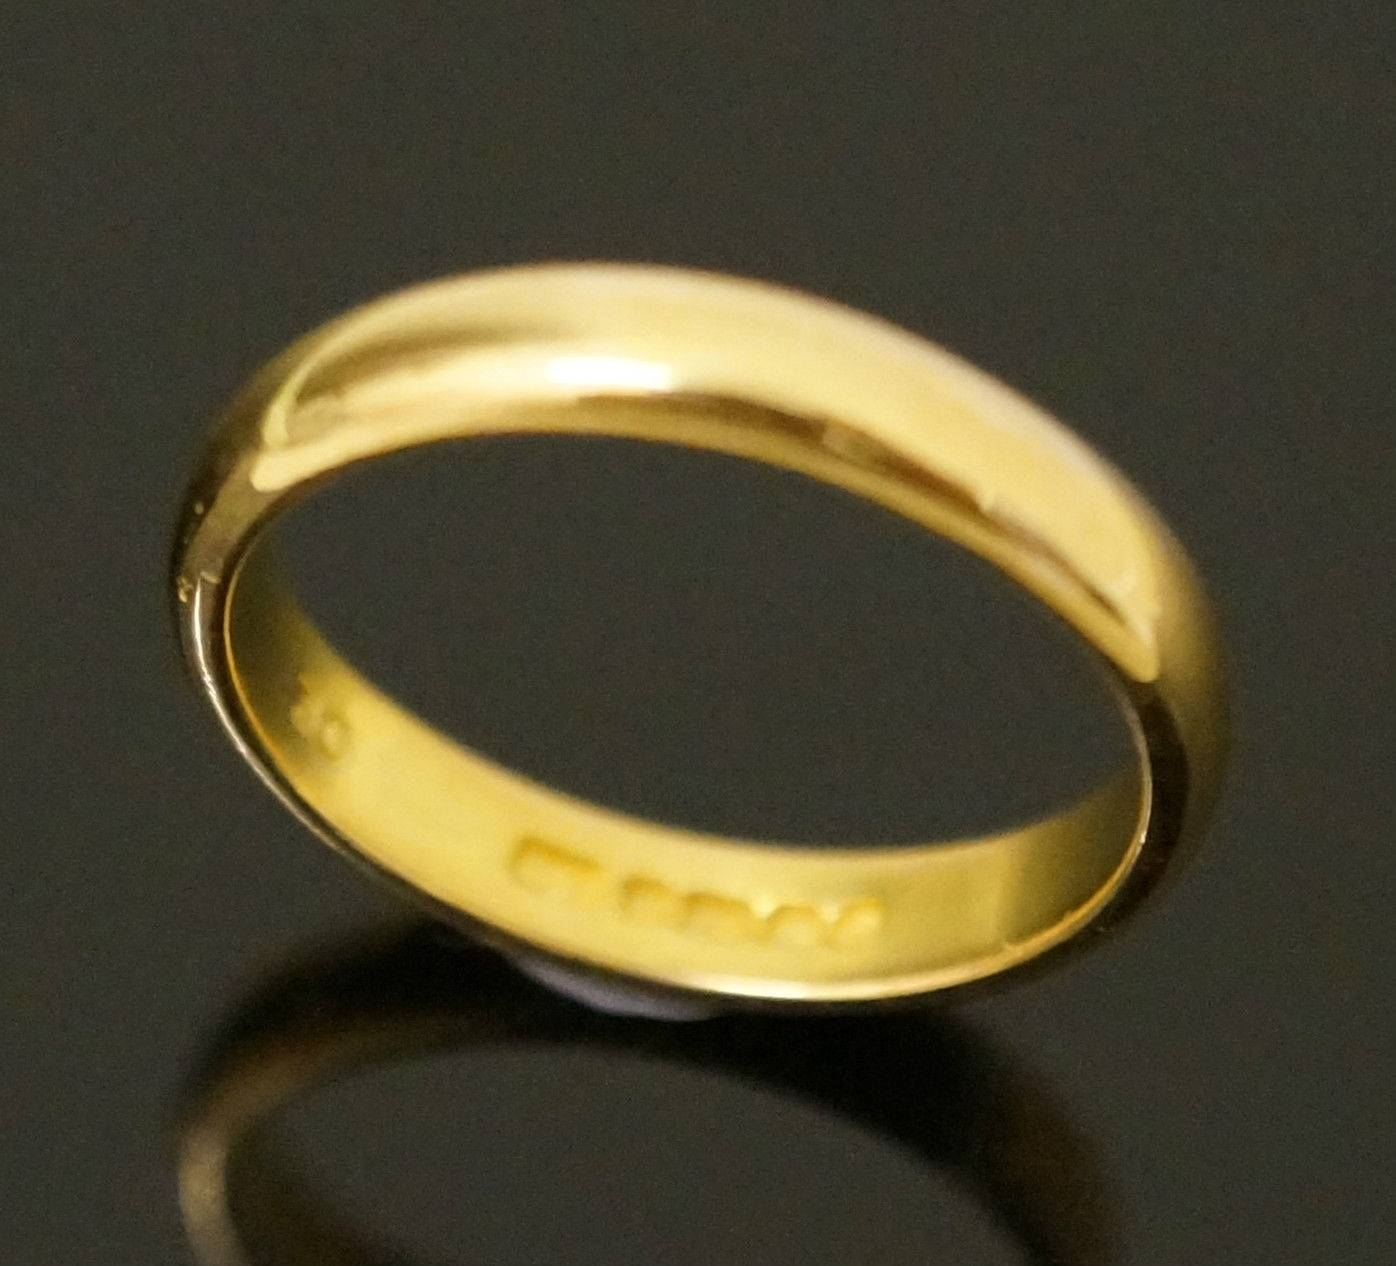 Wedding Rings : 22 Carat Gold Wedding Rings Dazzling 22 Carat Gold In 22 Carat Gold Wedding Rings (View 12 of 15)